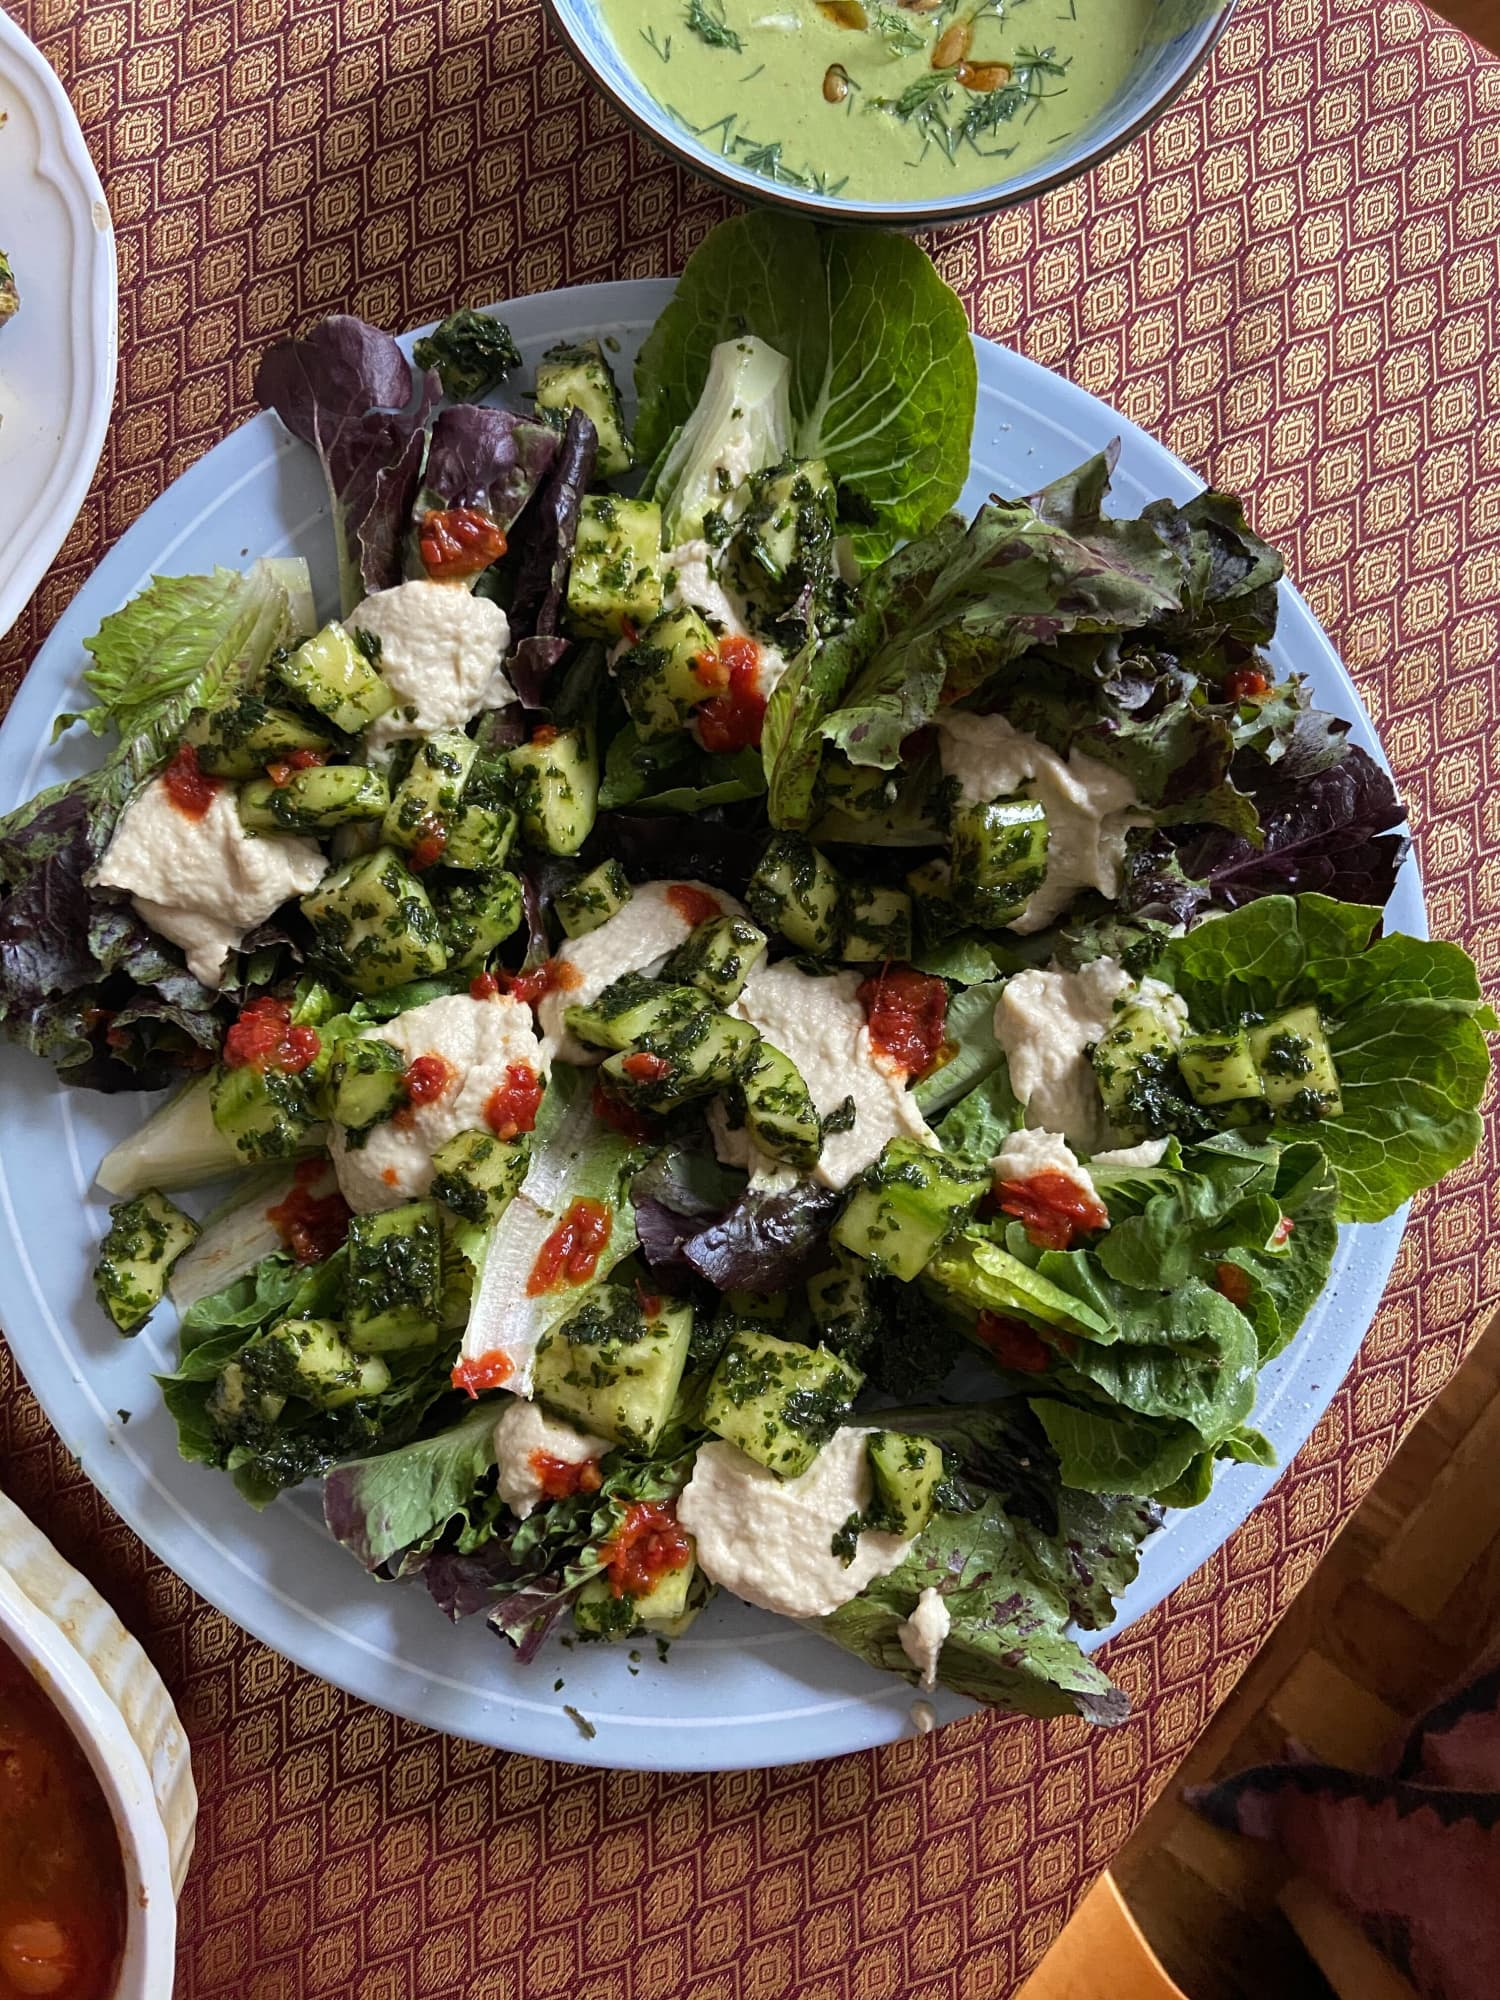 The Creamy, Crave-Worthy Dressing That Makes Any Salad a Star